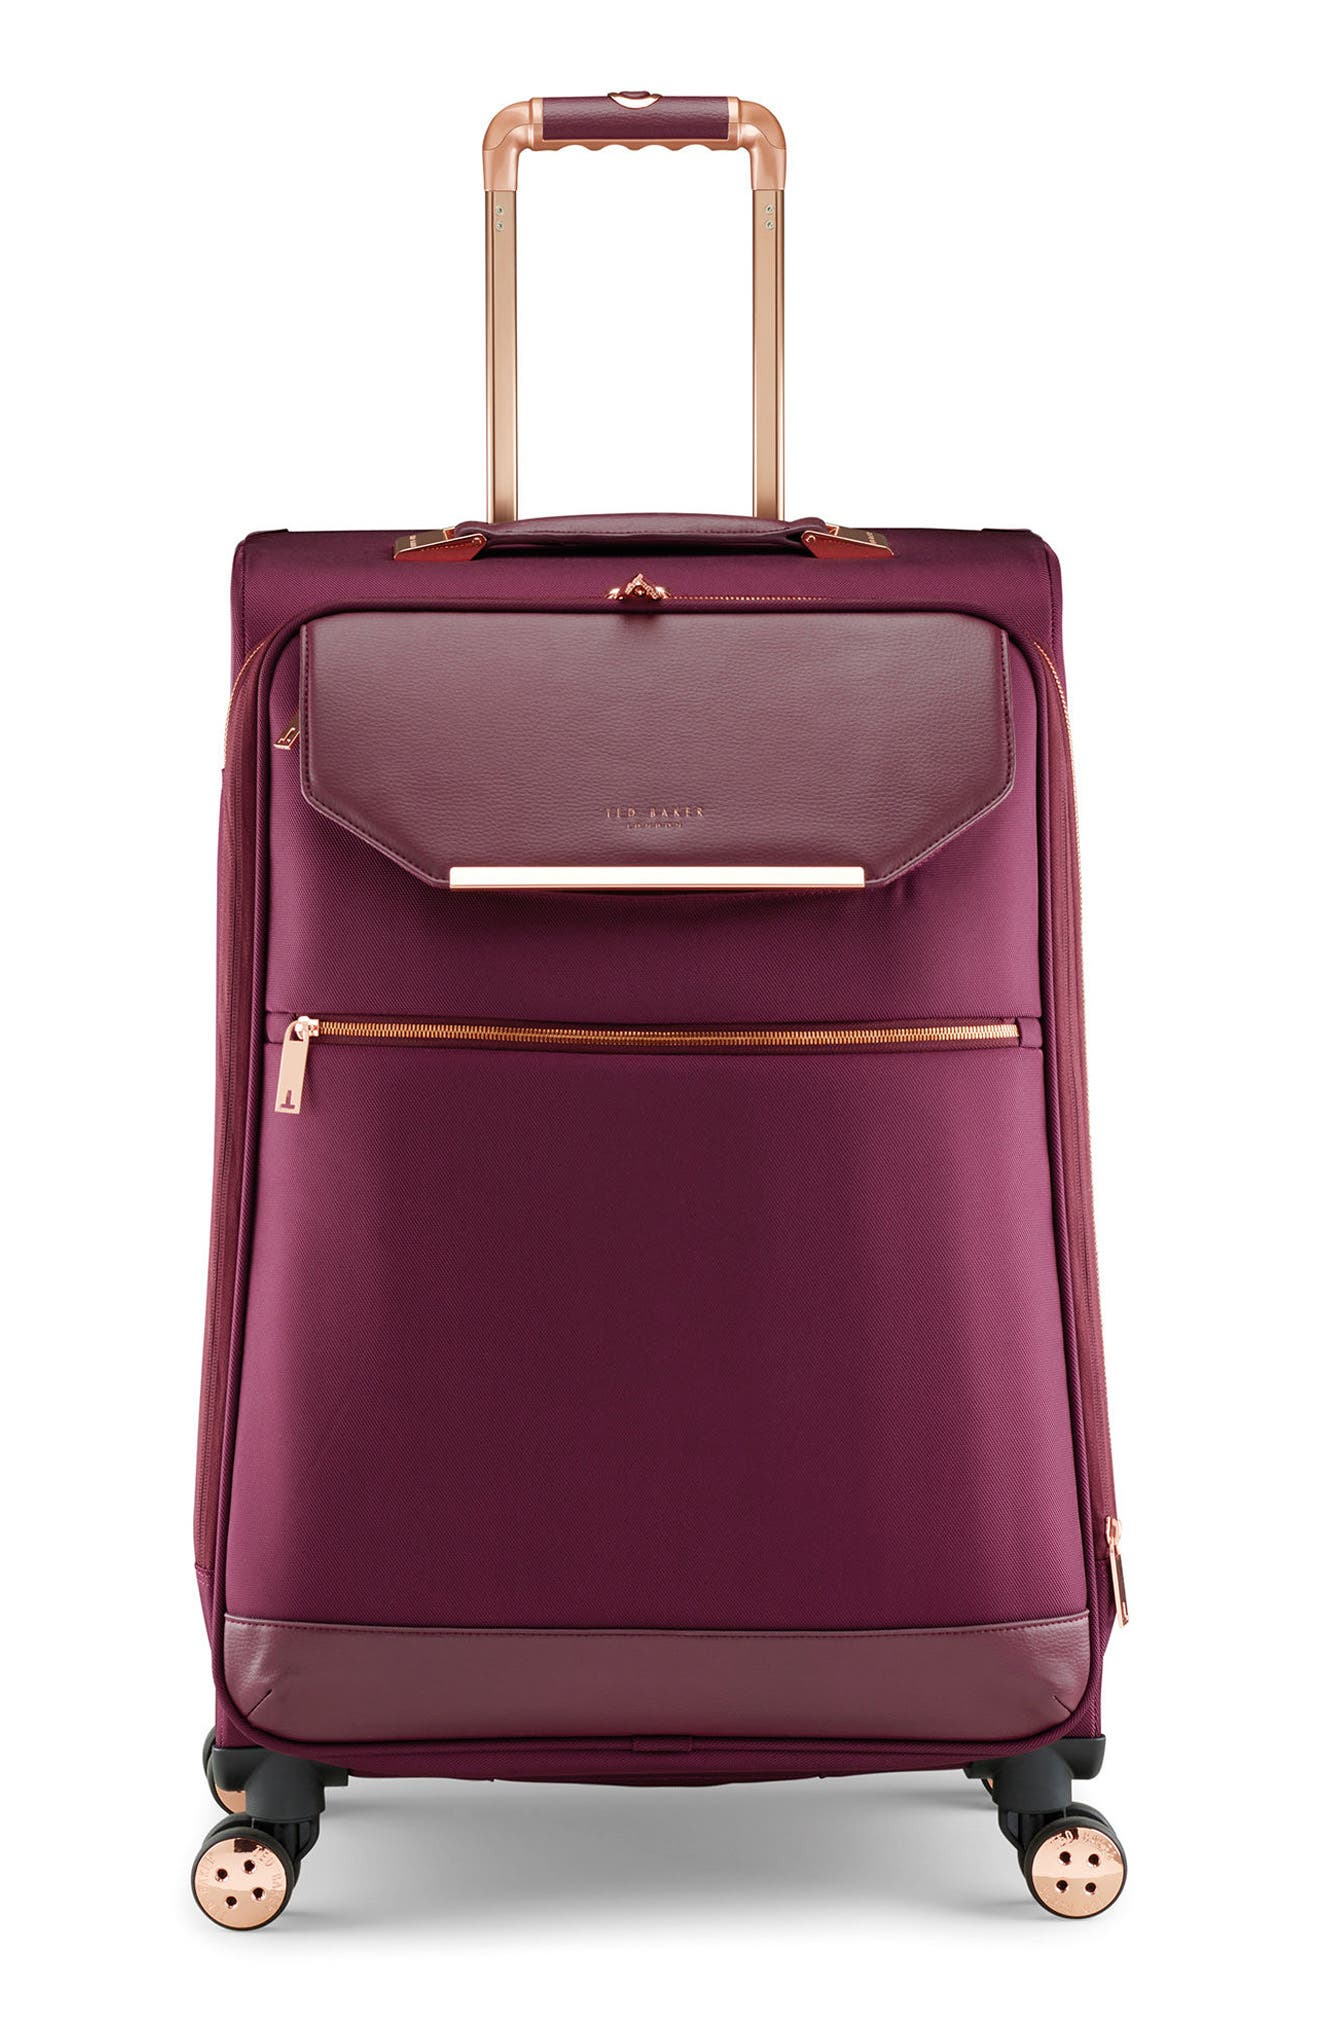 28-Inch Spinner Trolley Packing Case,                         Main,                         color, BURGUNDY